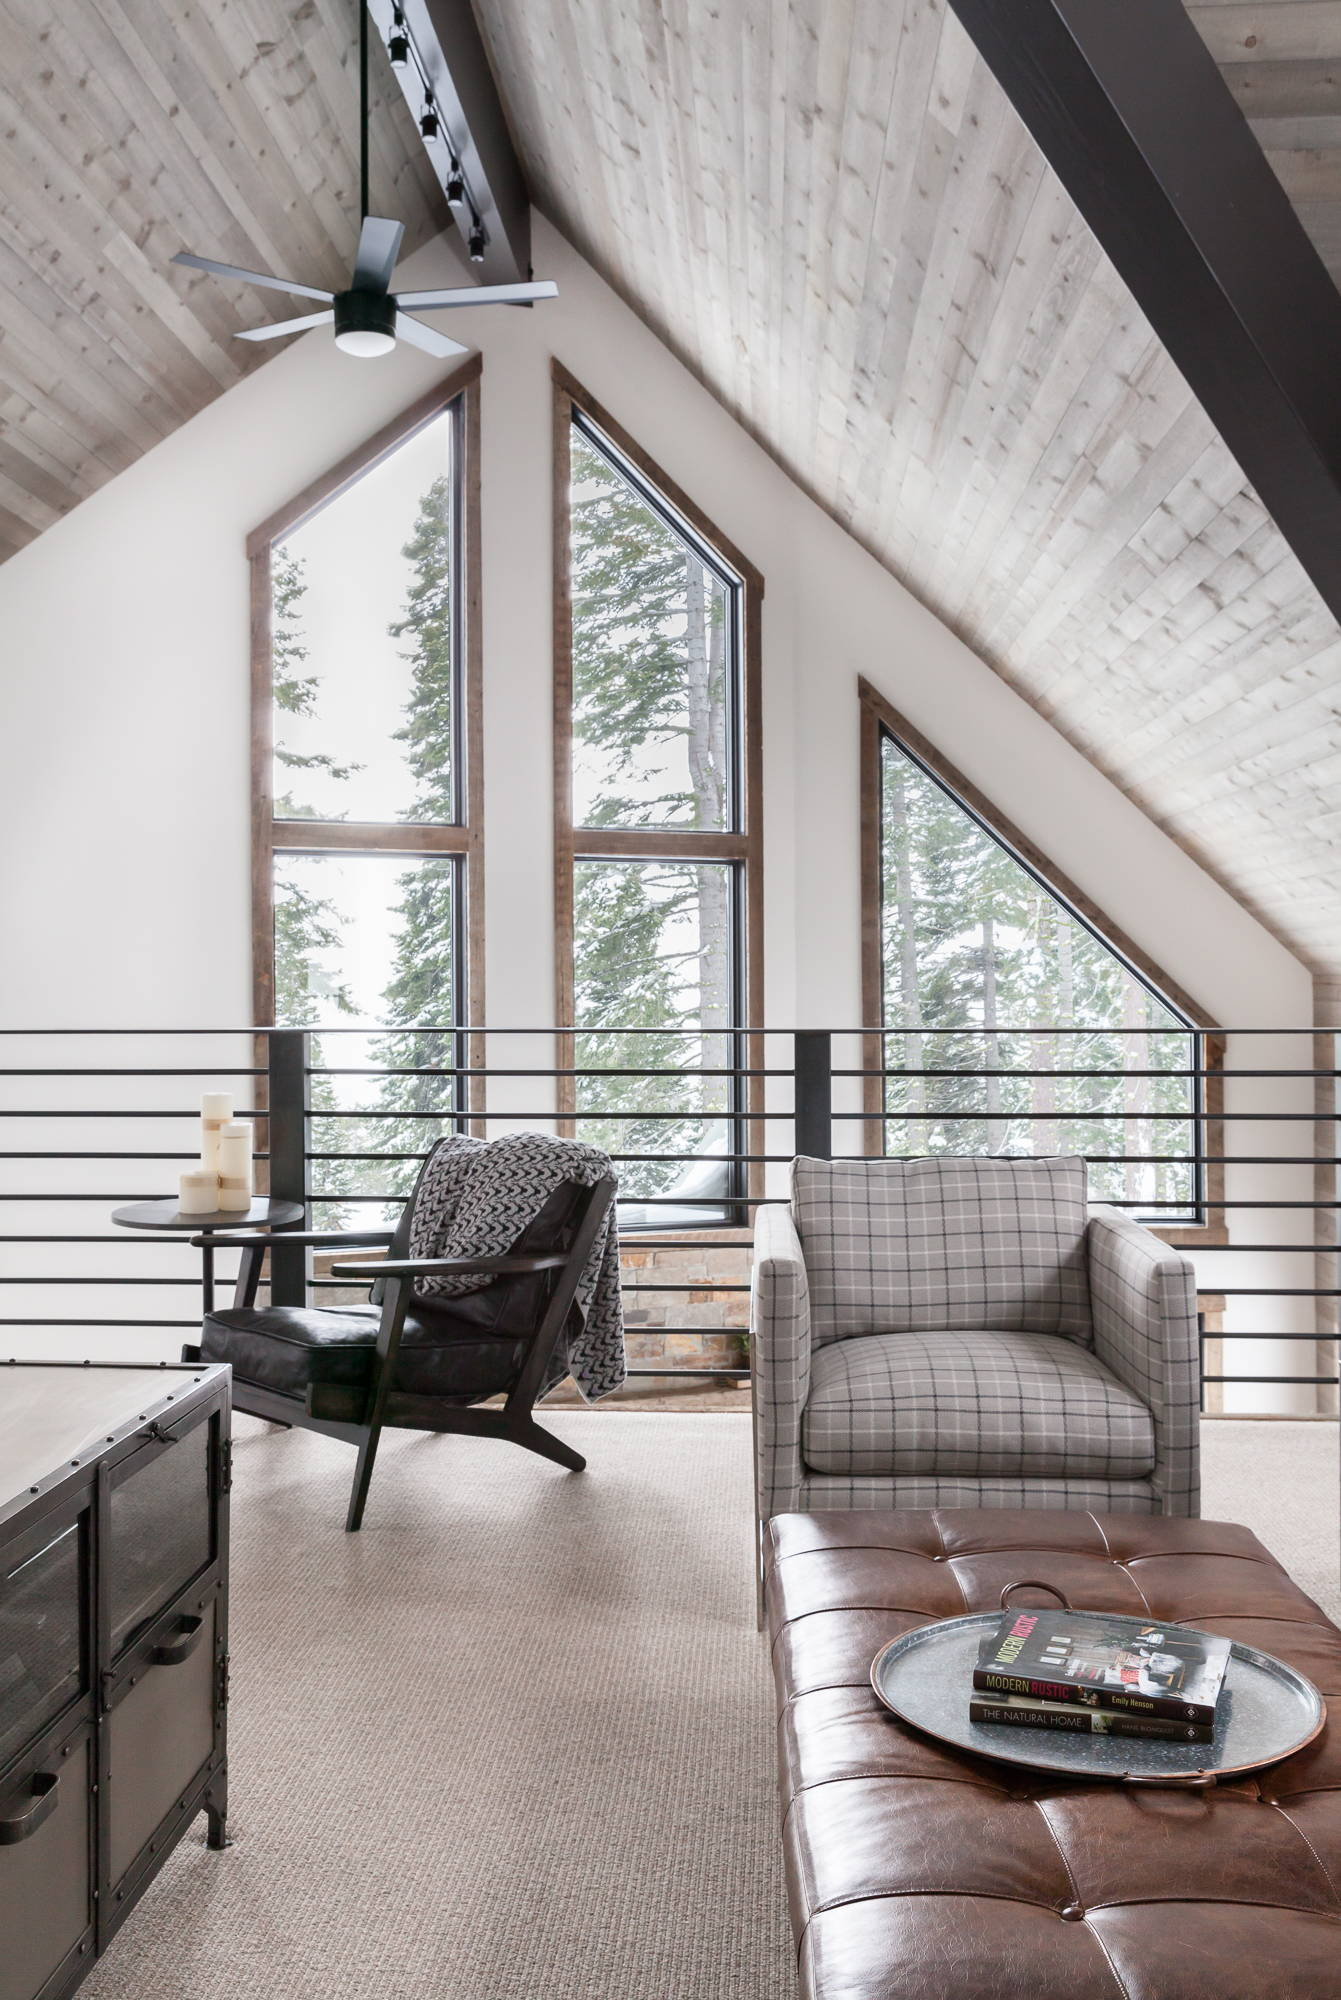 40 Tips For The Perfect A-Frame Cabin